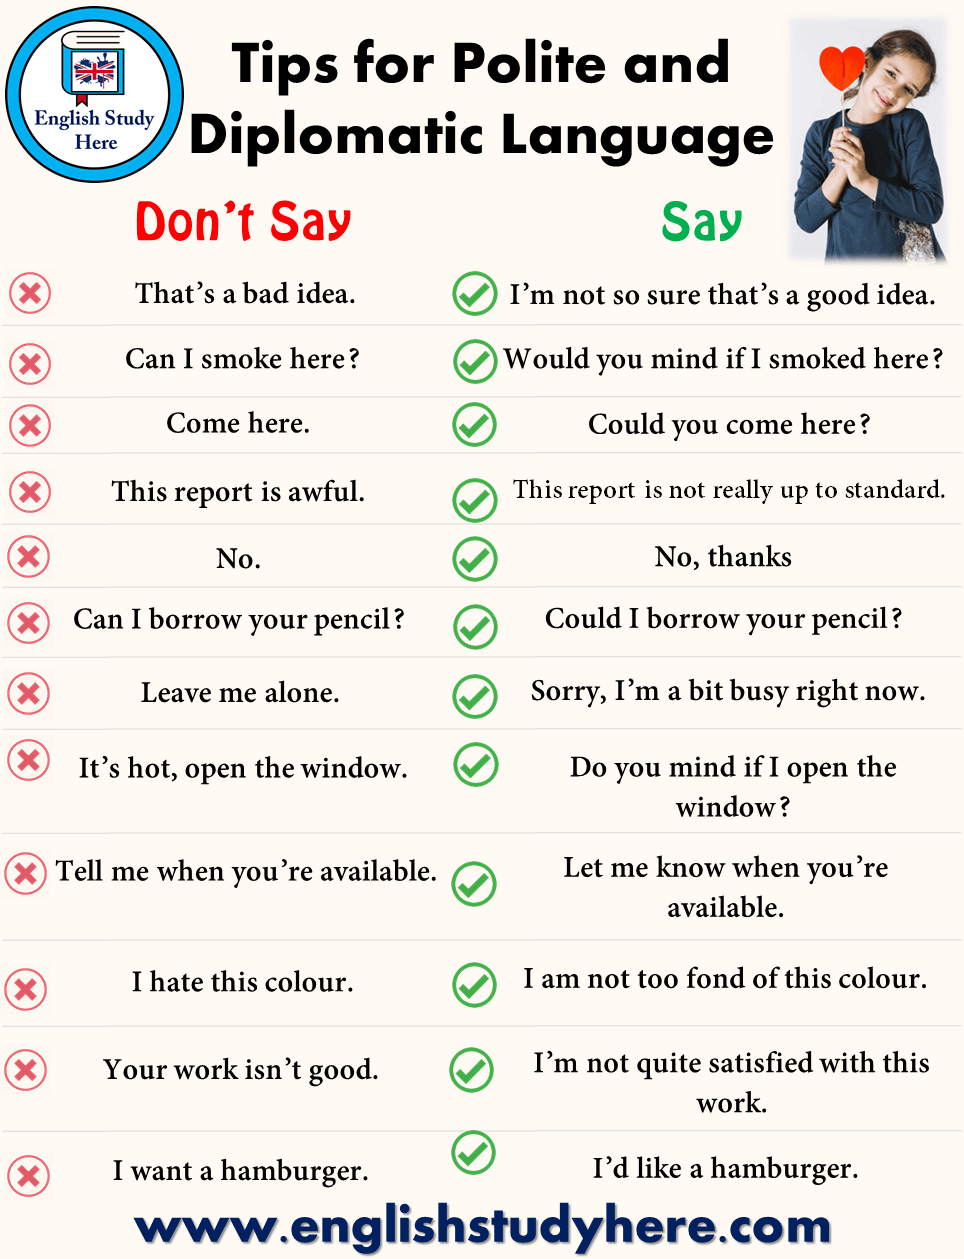 Tips for Polite and Diplomatic Language